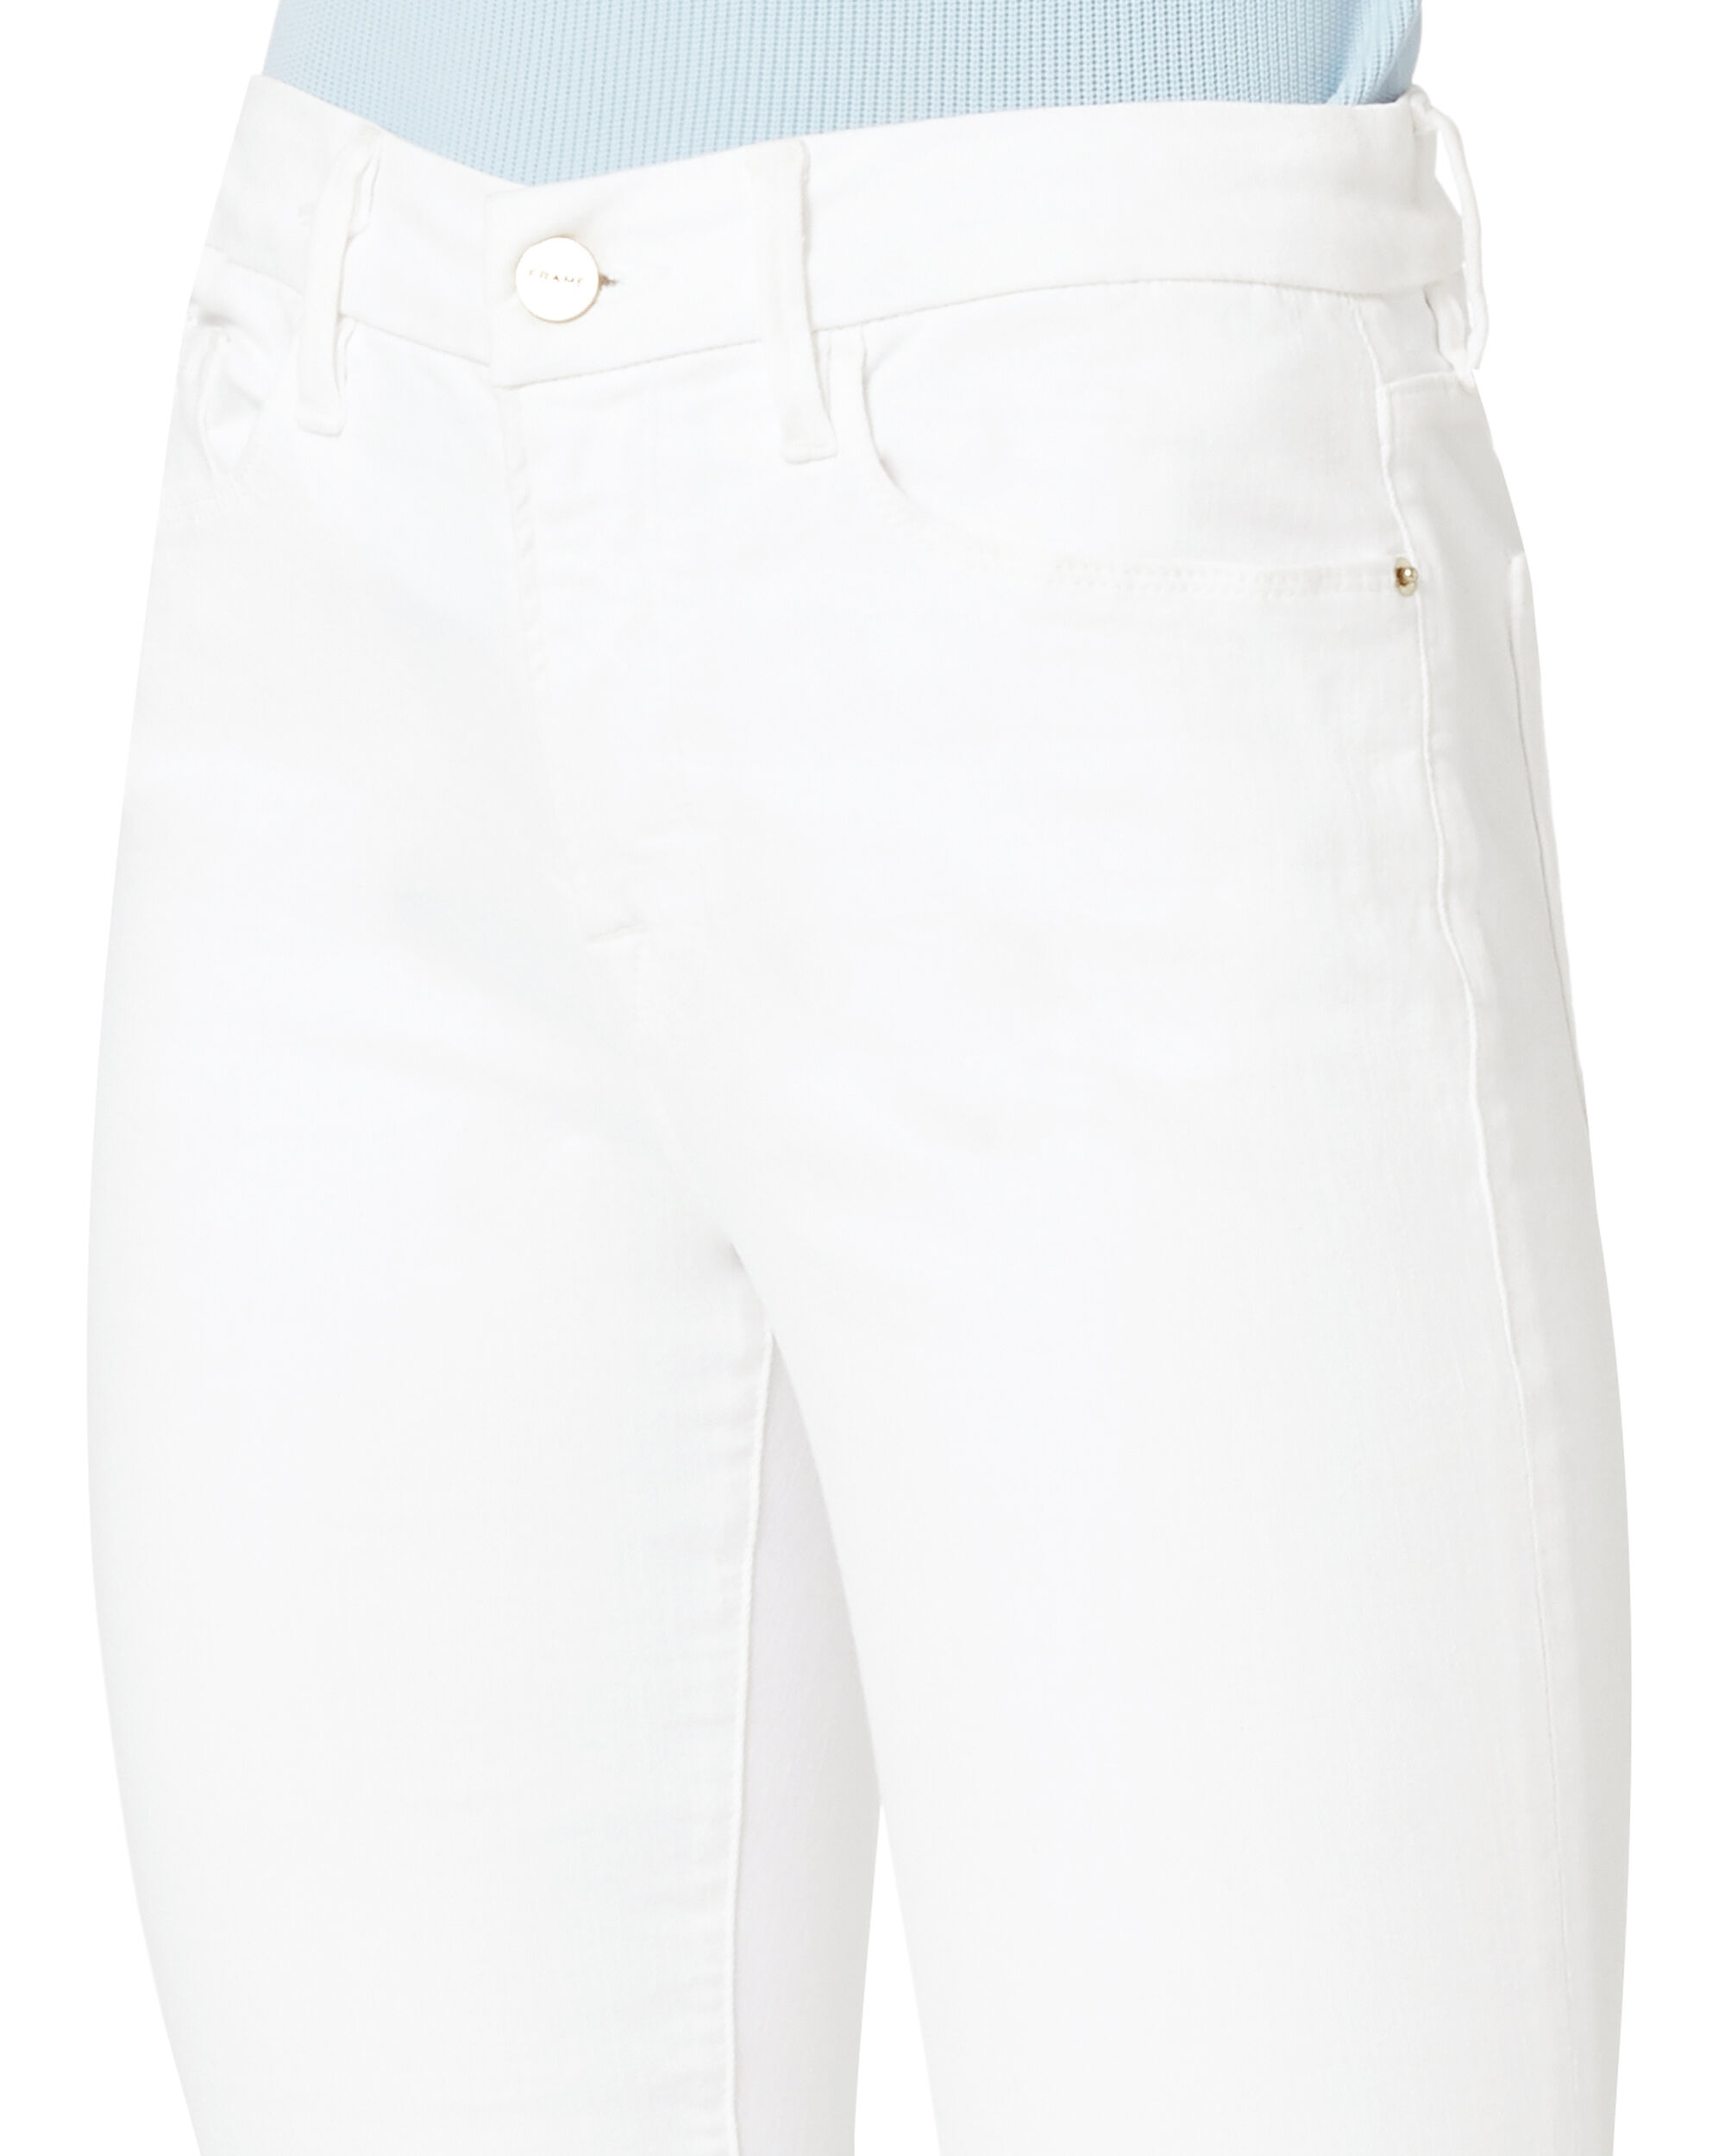 Le Crop Mini Boot Shredded Jeans, WHITE, hi-res